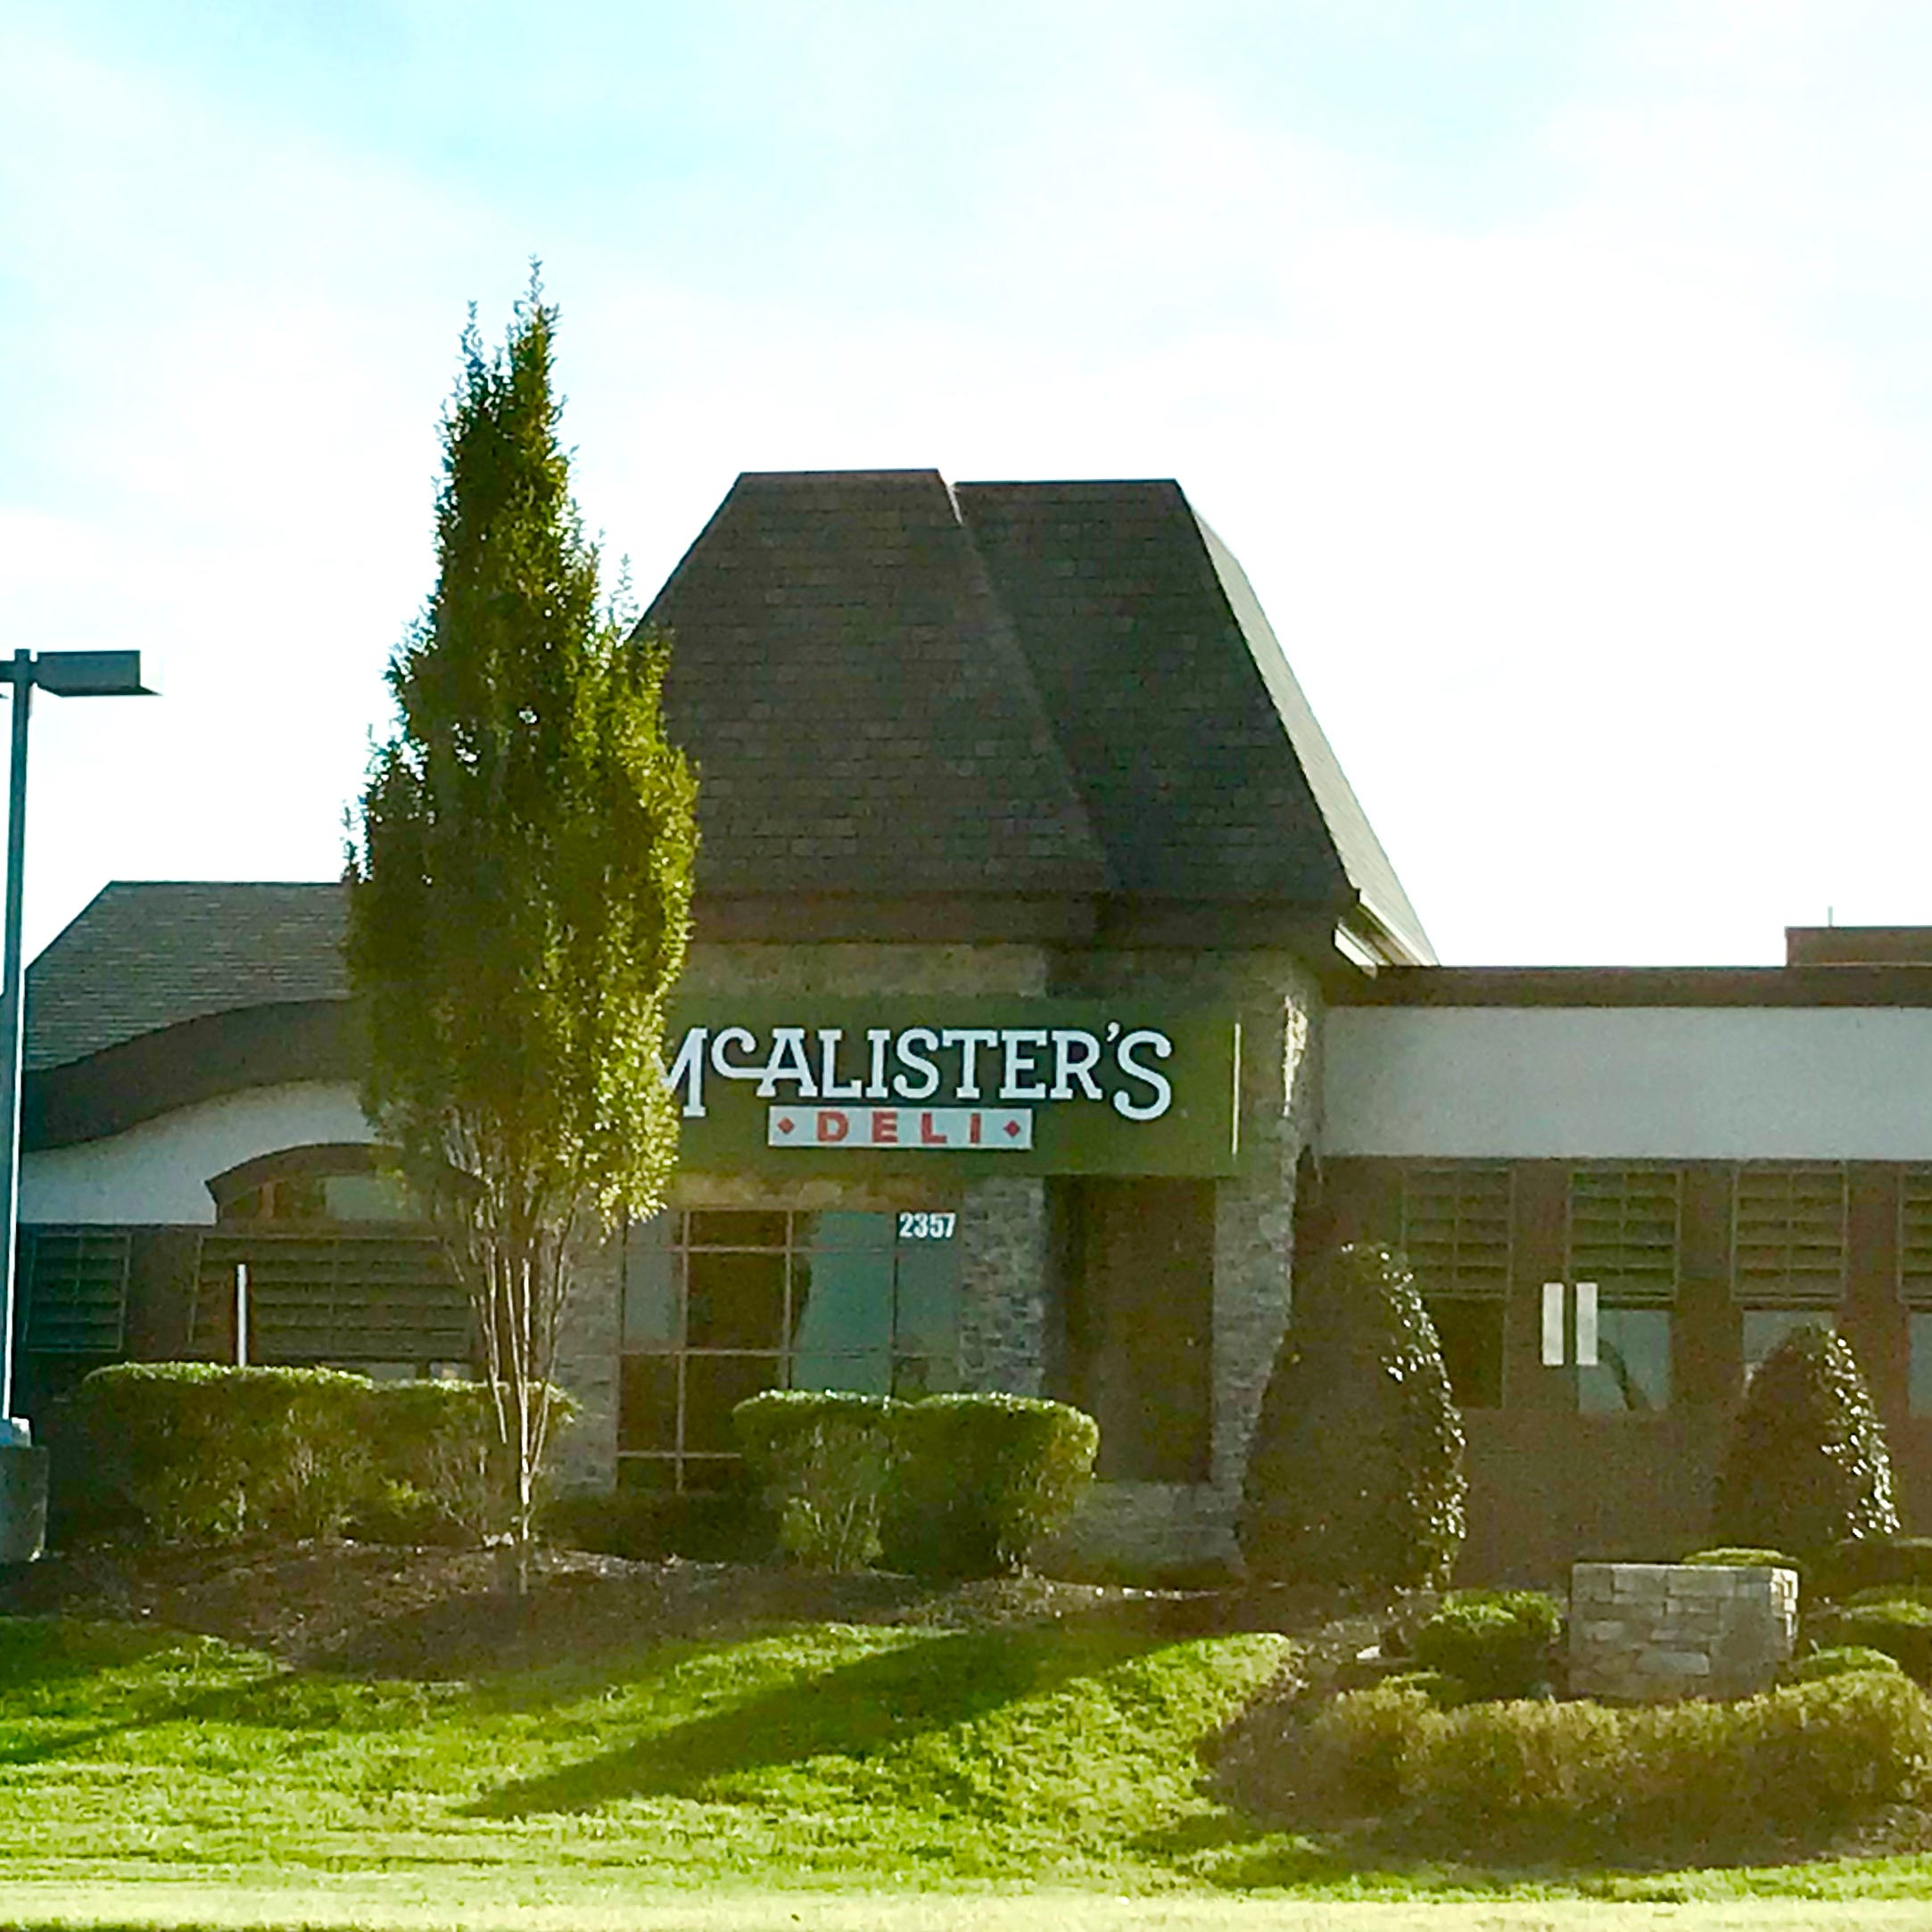 McAlister's Deli, Steak 'n Shake almost ready to open in Murfreesboro, Smyrna